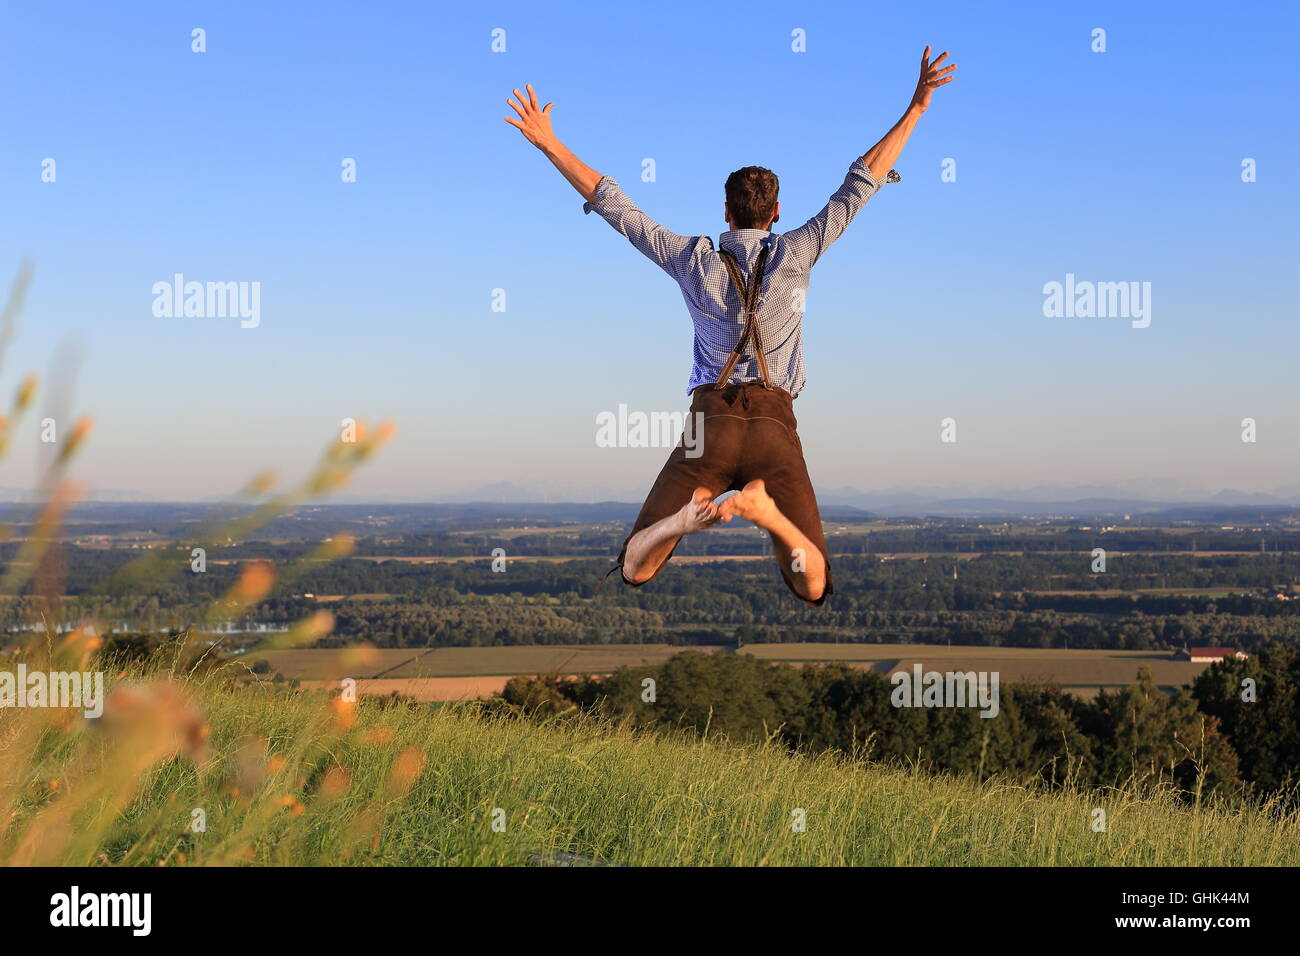 A German Man in Bavarian dress jumping happily on lawn - Stock Image